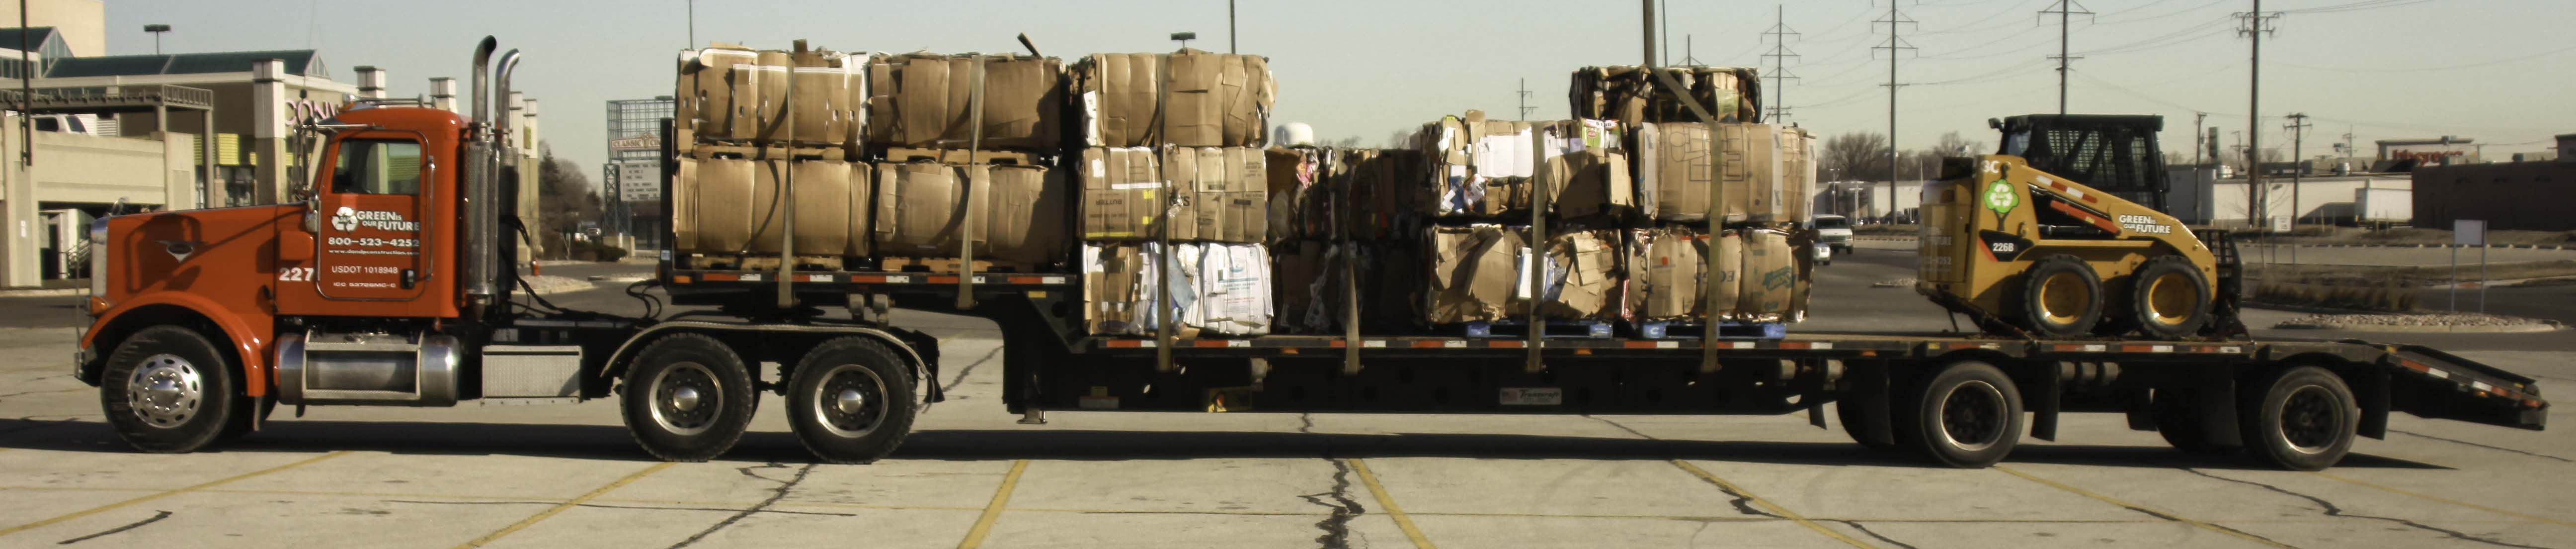 D&P Cardboard trailer on route picking up material.